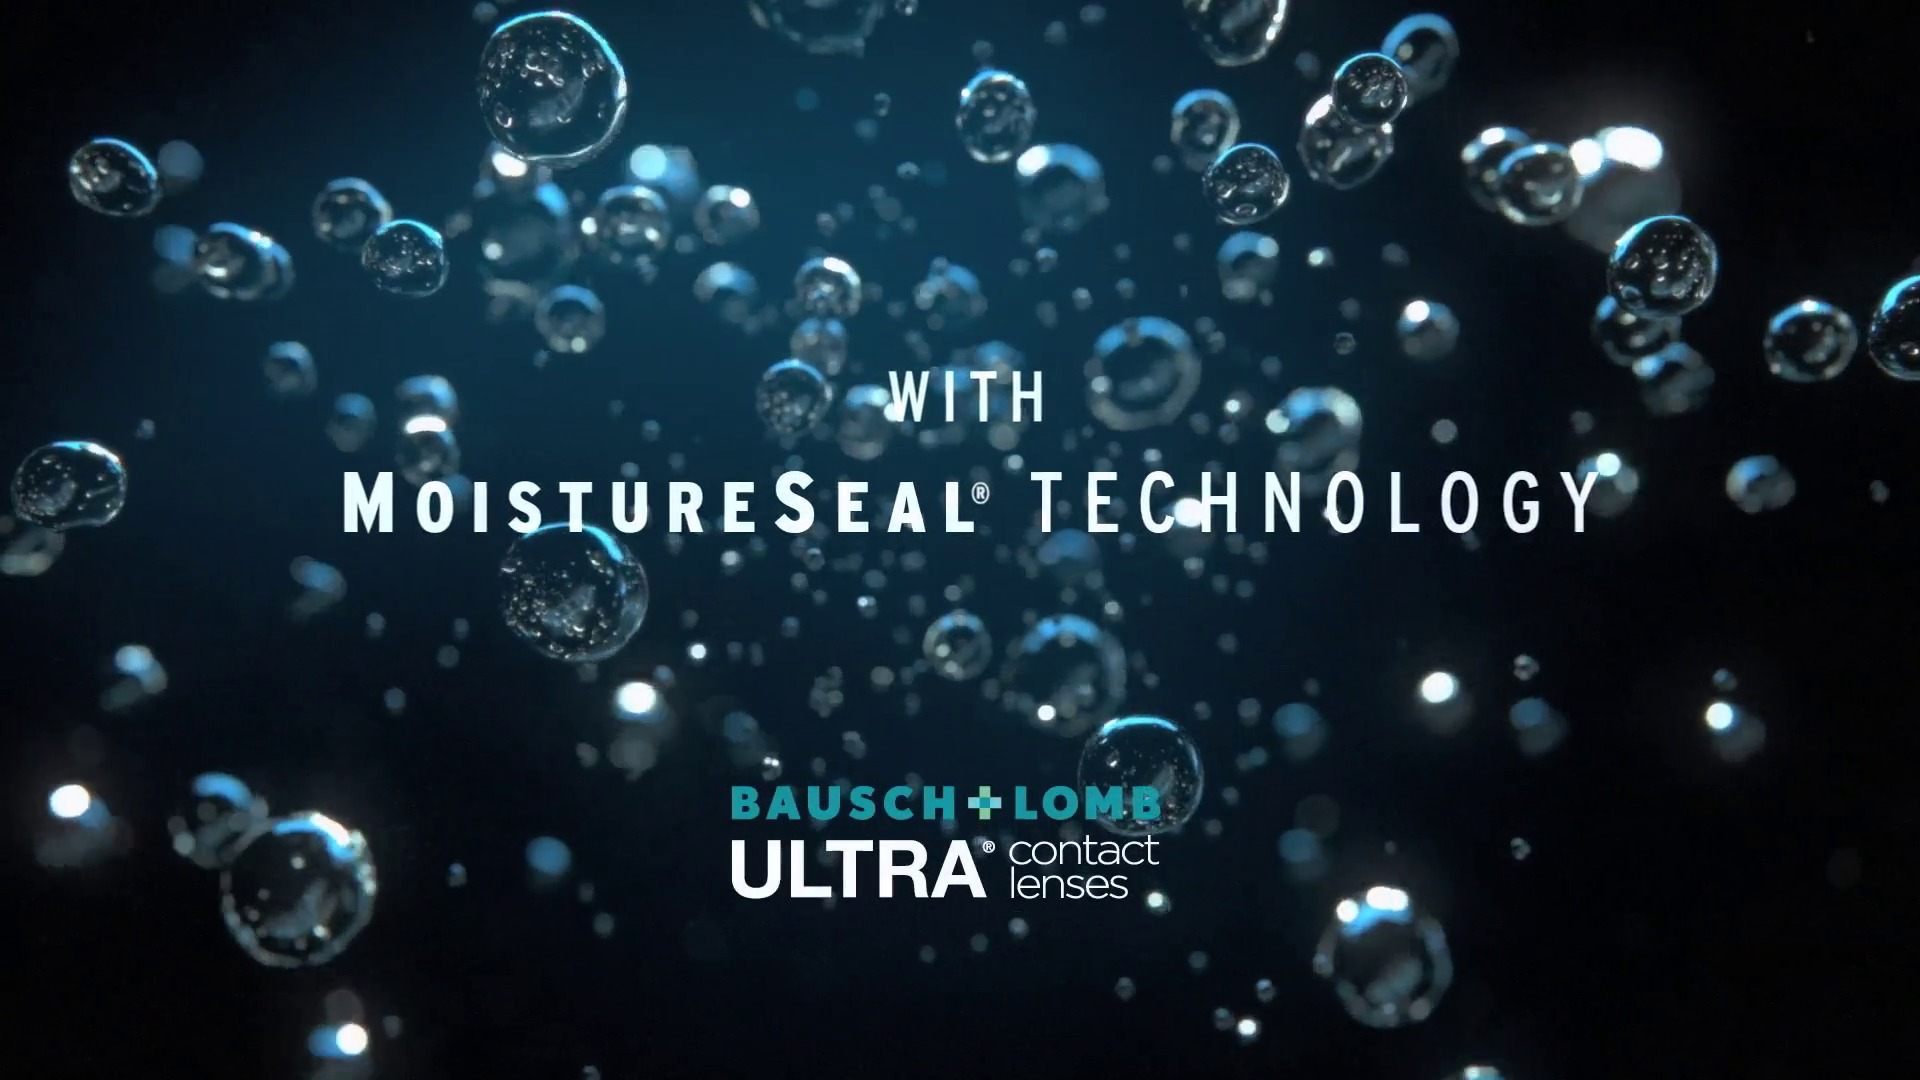 Bausch Lomb Ultra Contact Lenses With Moistureseal Technology Softlens Bc Rainbow 165mm Is This Product Right For You